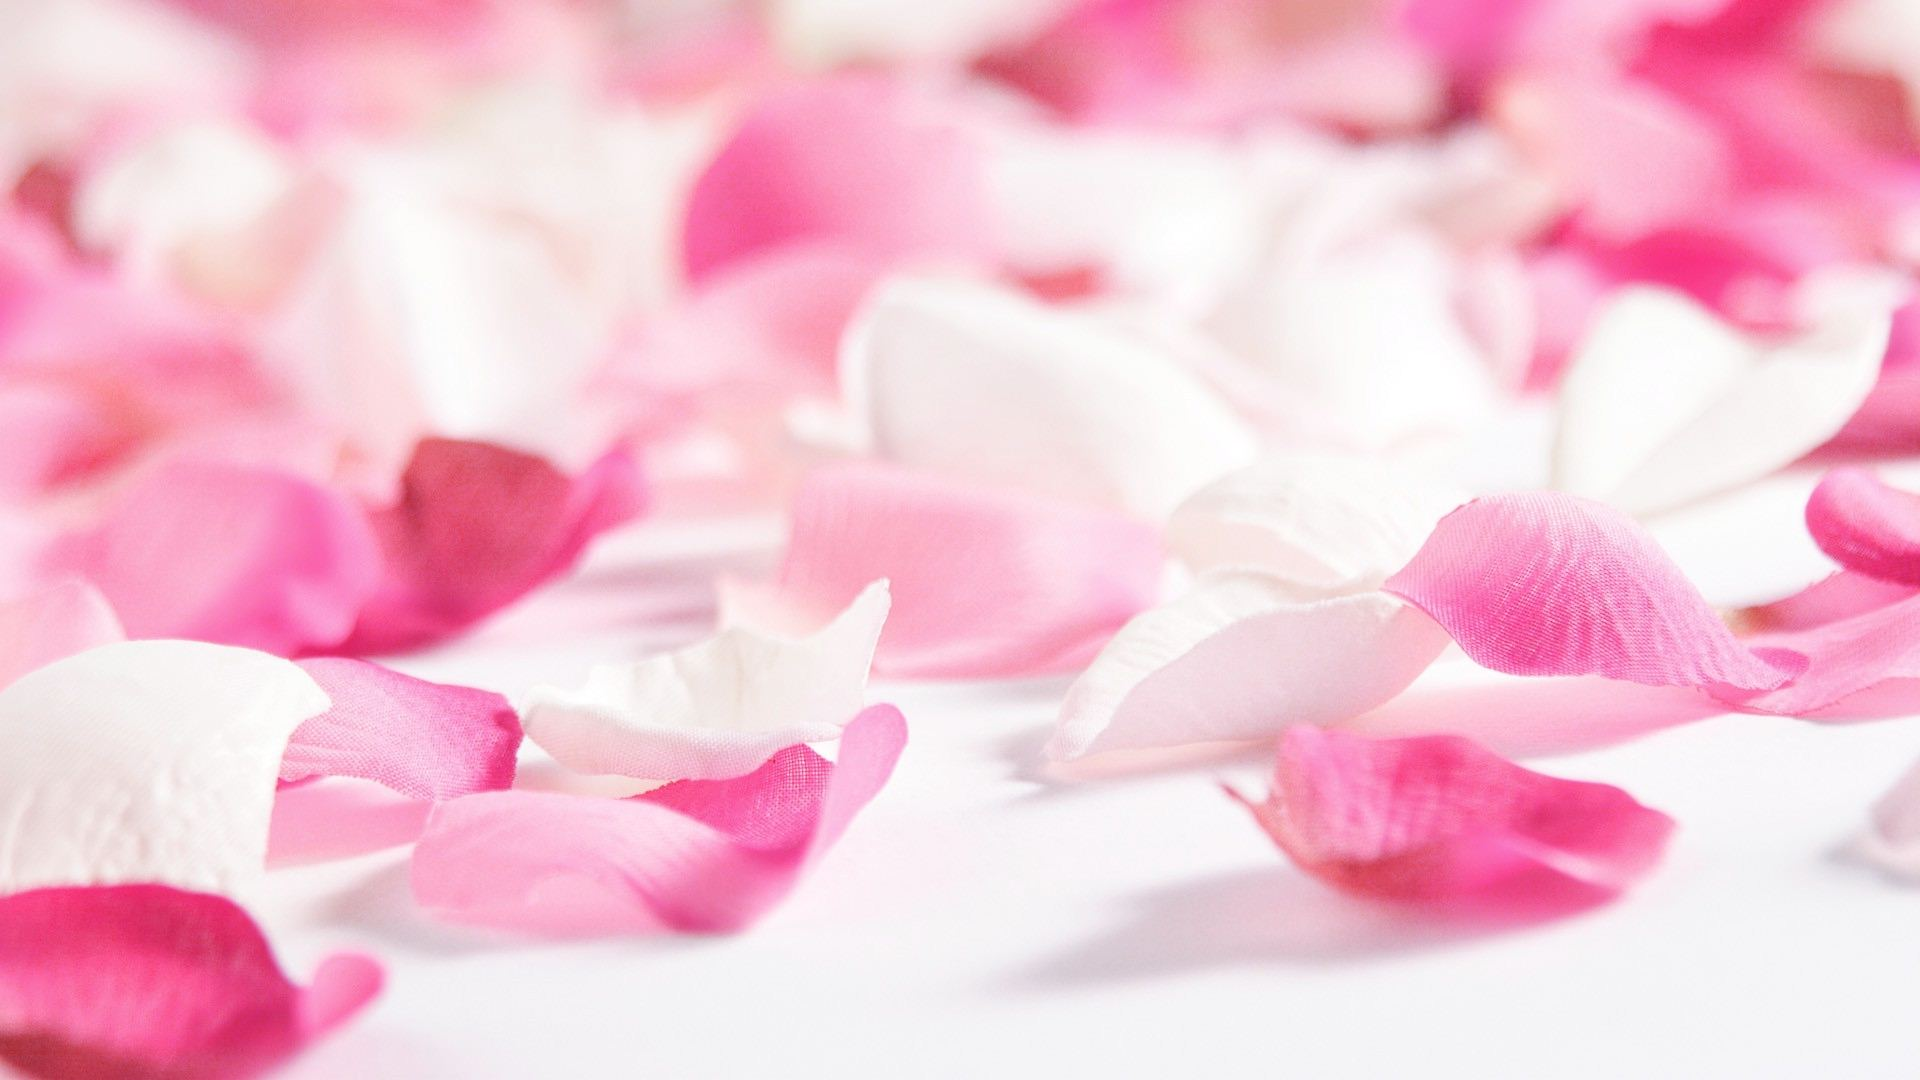 HD Rose Petals Wallpapers